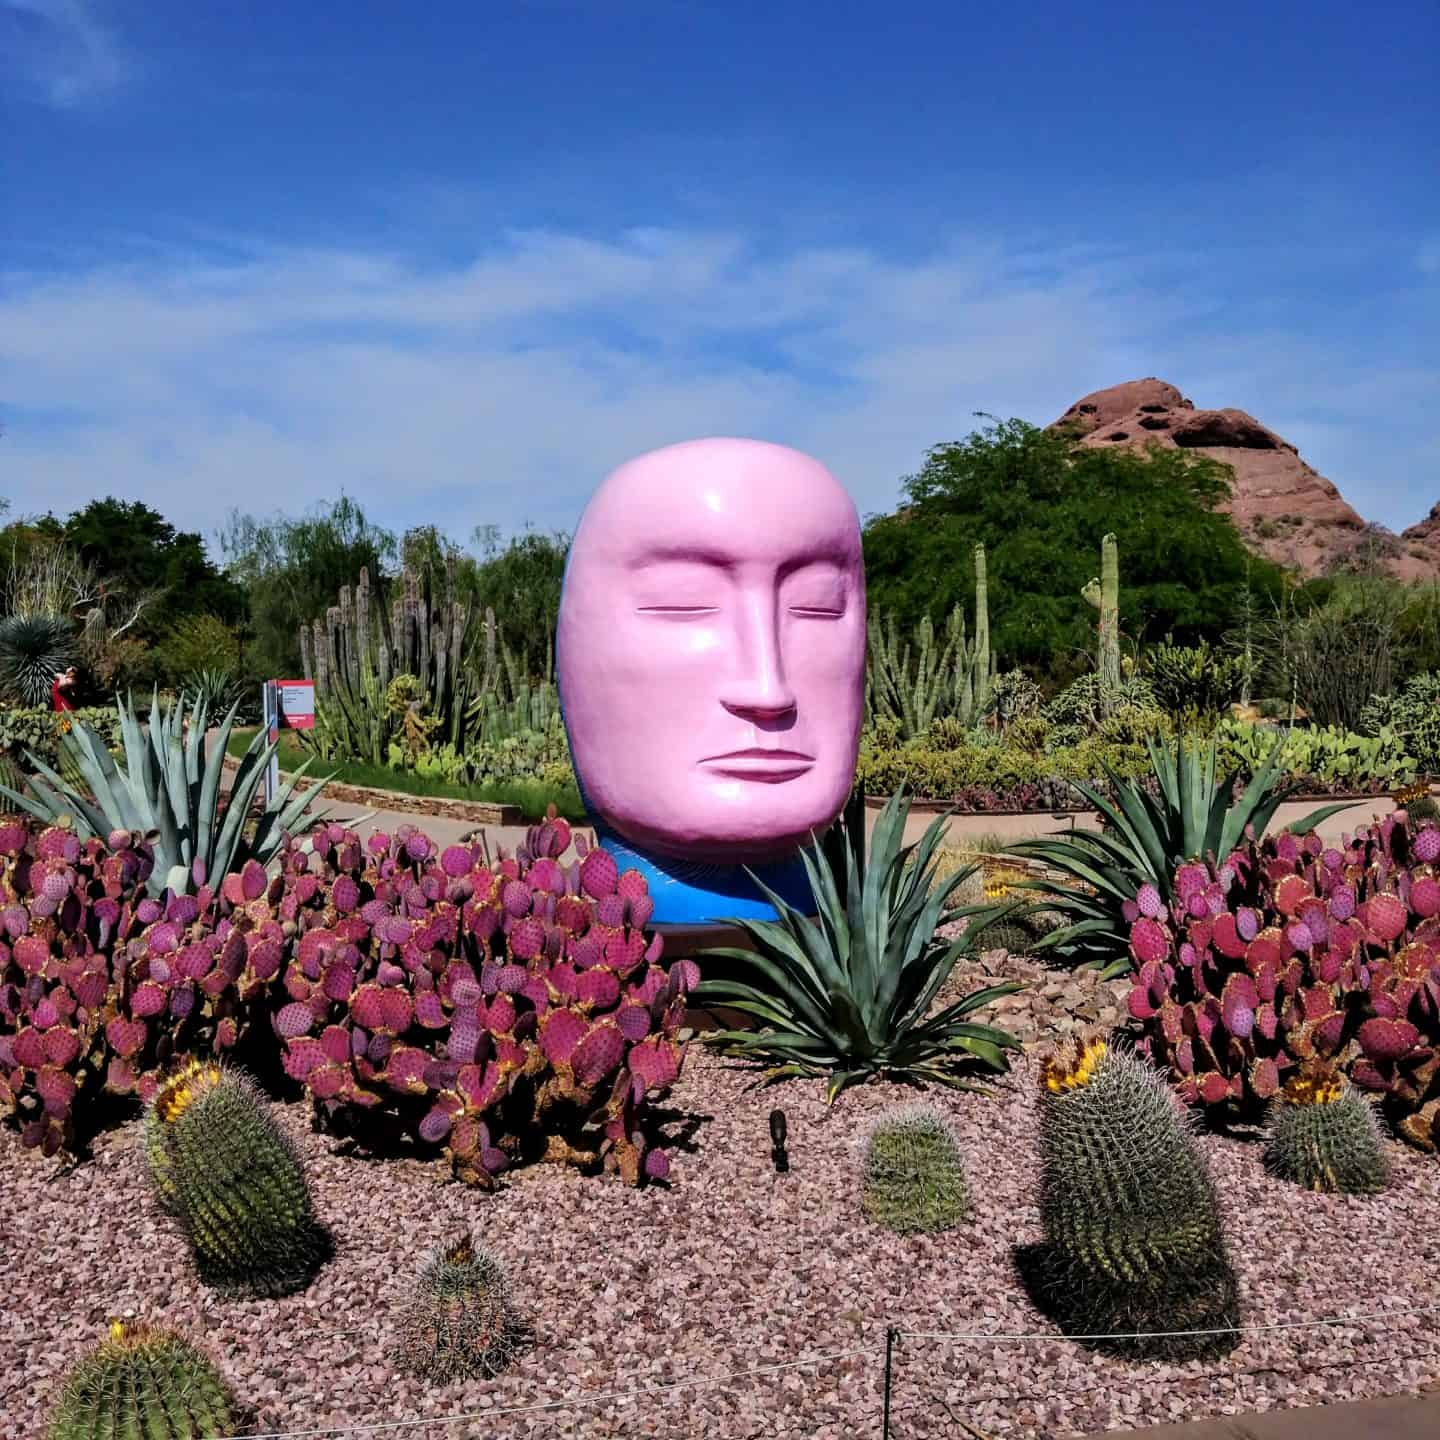 Botanical Gardens Arizona Tempe Pink head in cactus garden with mountain views